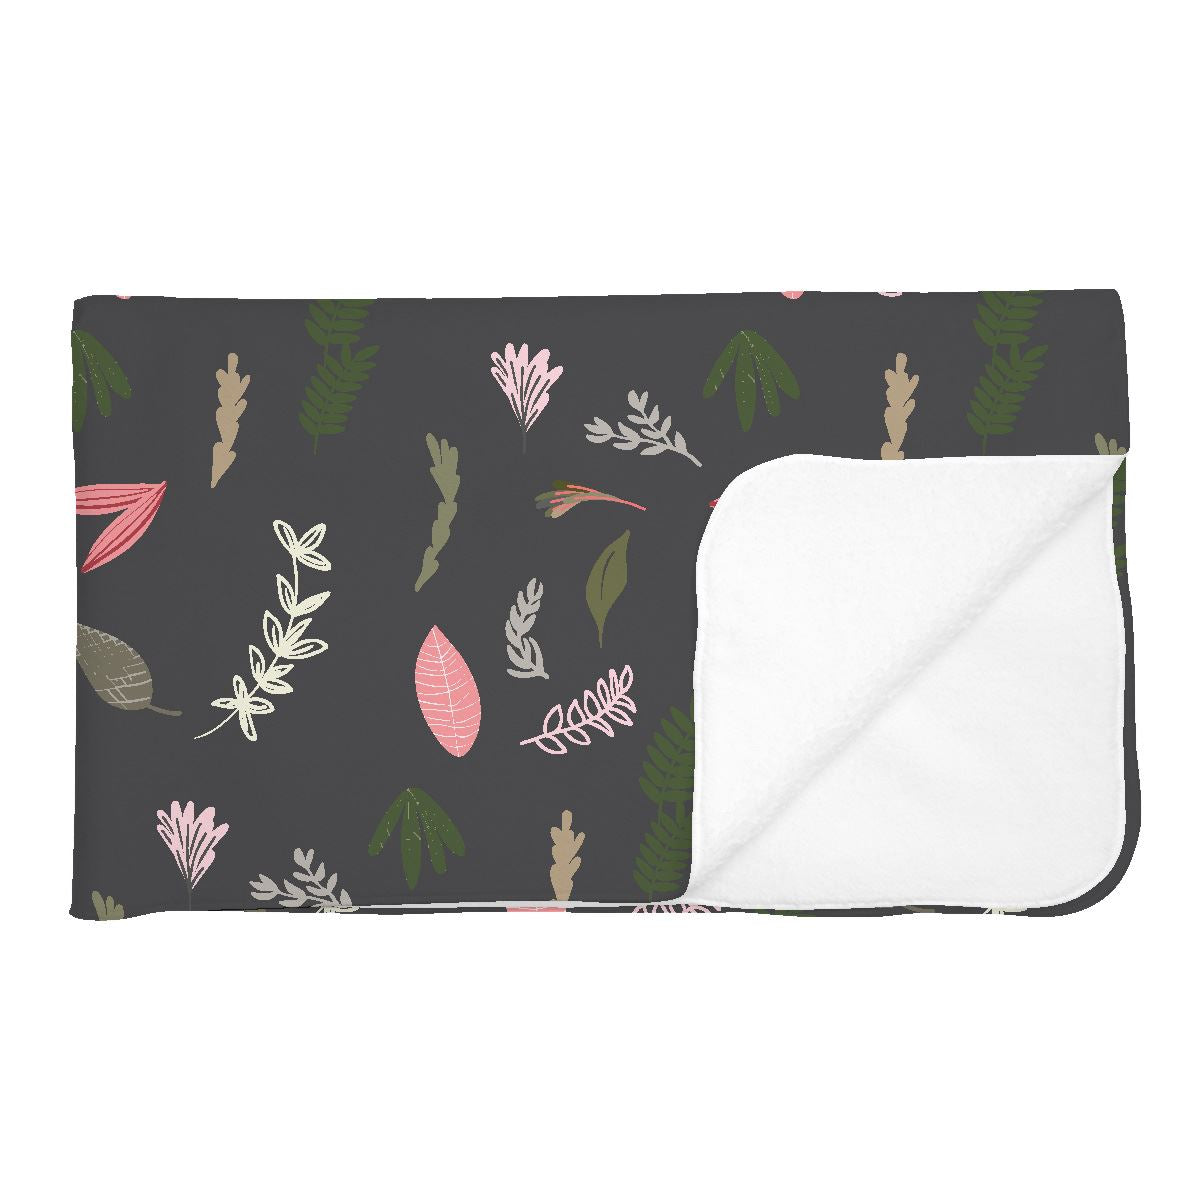 Amani's Floral | Adult Size Blanket